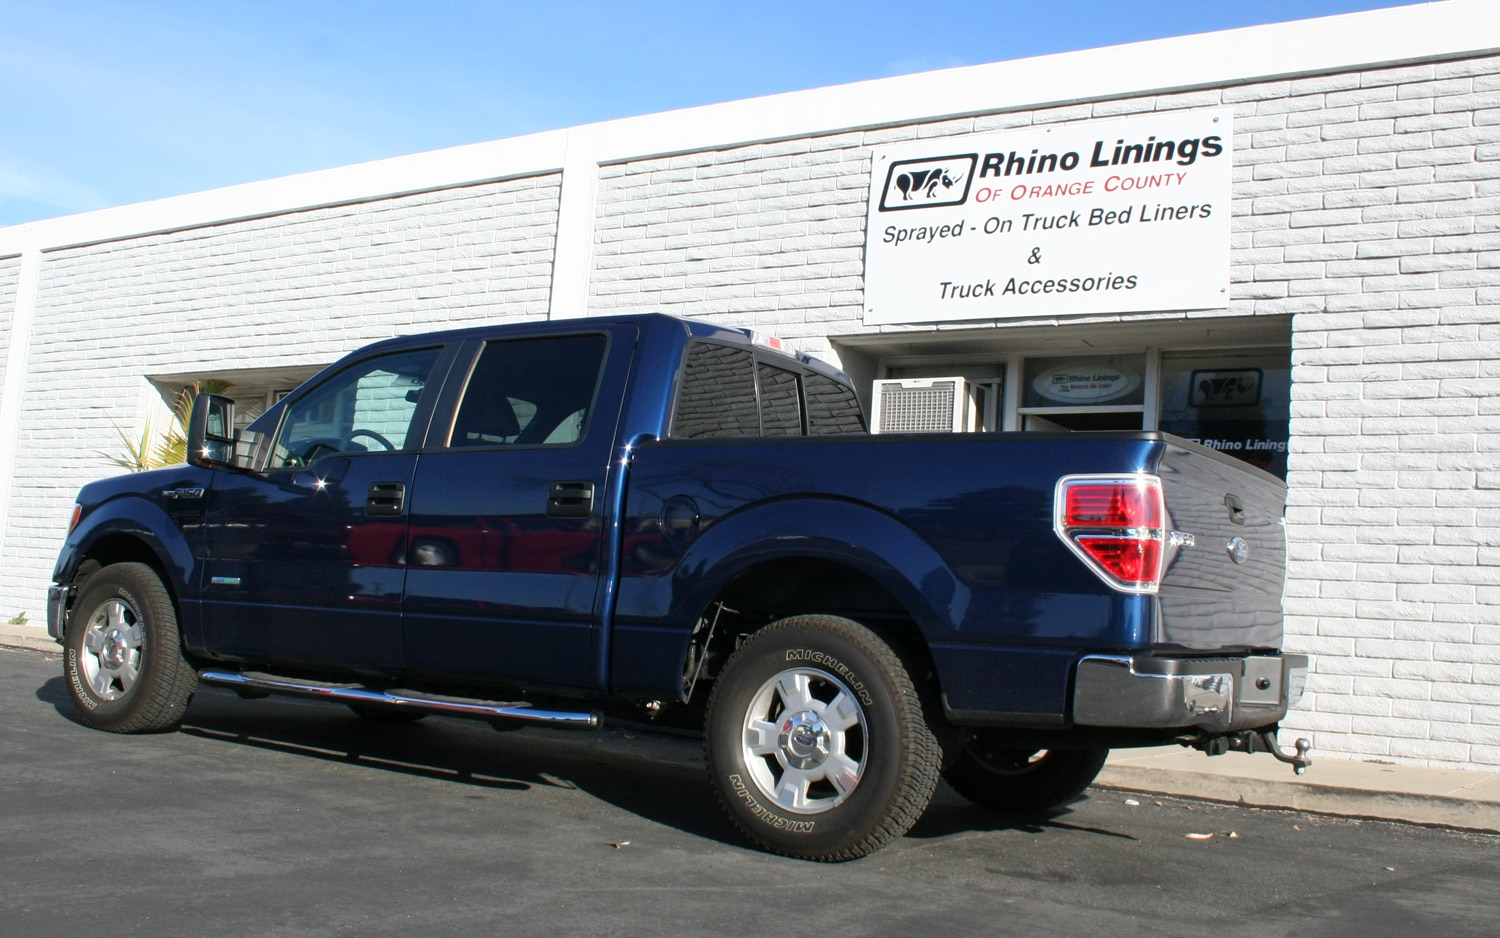 2012 Ford F 150 Ecoboost Project Work Truck Rhino Linings Sprayed On